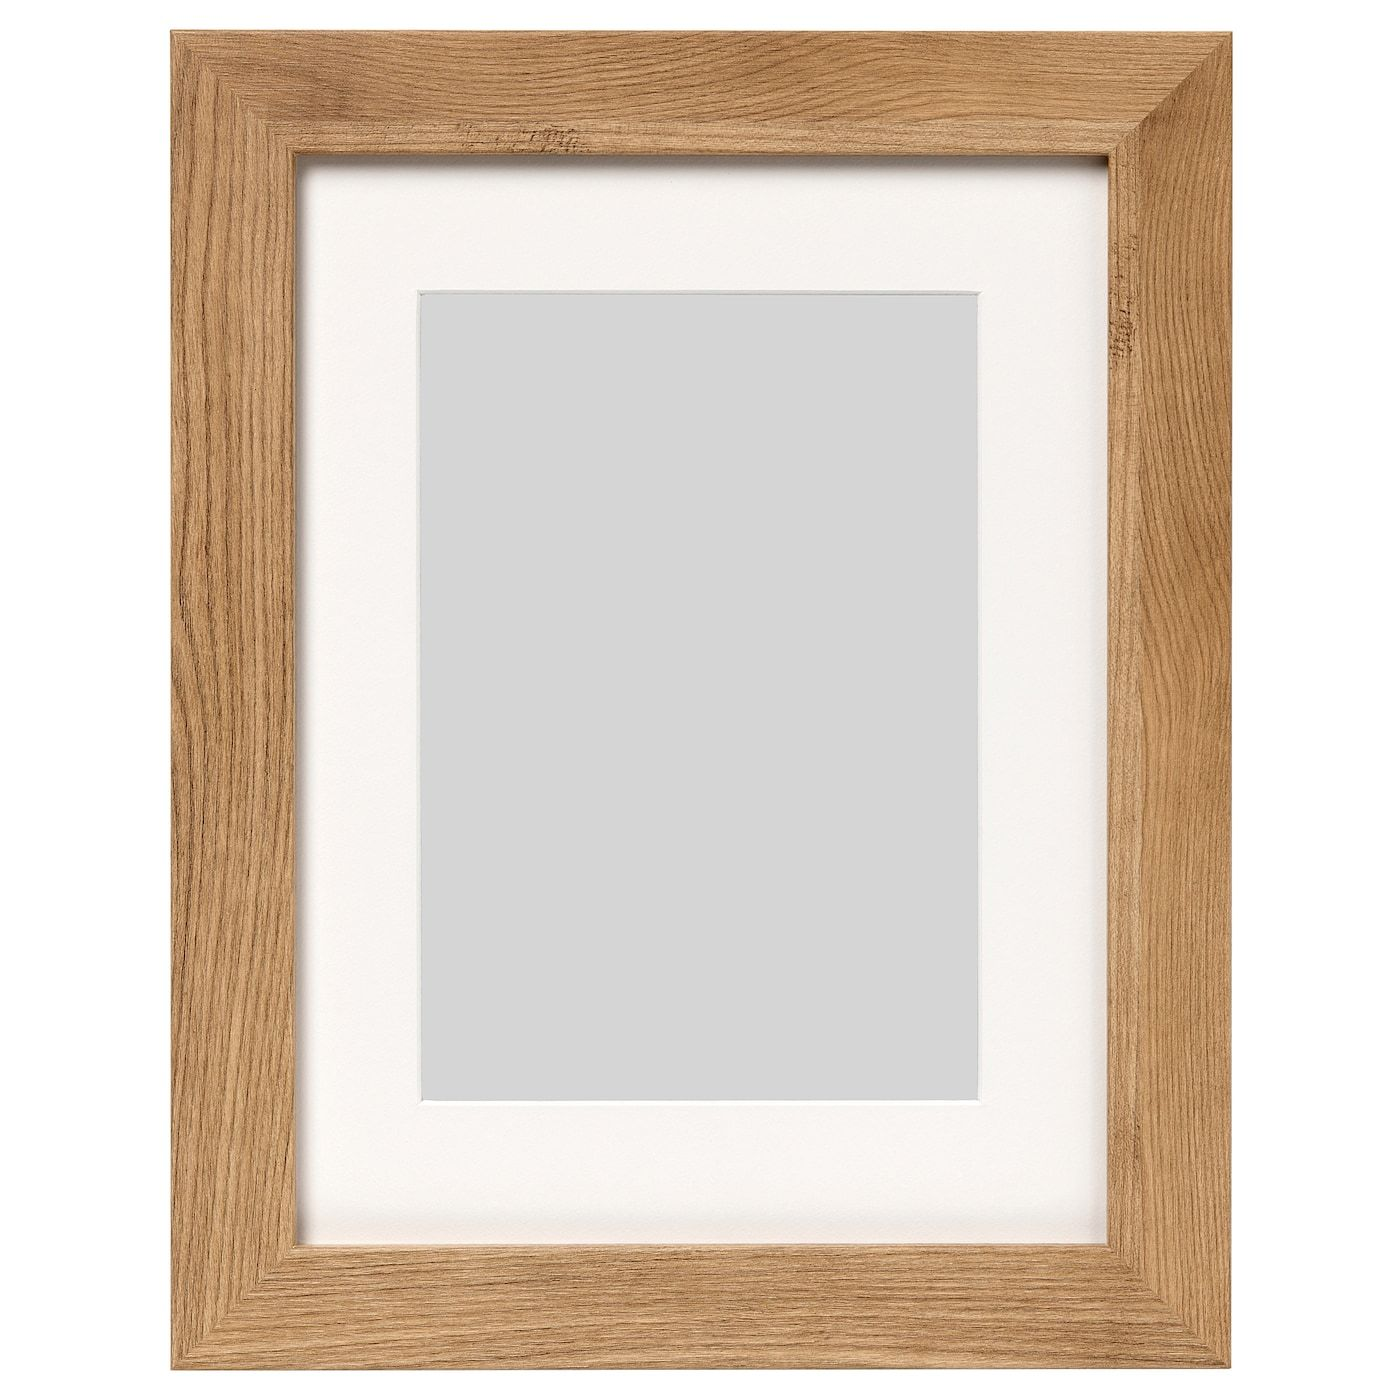 Dalskarr Frame Wood Effect Light Brown 12x16 In 2020 Brown Picture Frames Gallery Wall Frames Wood Picture Frames